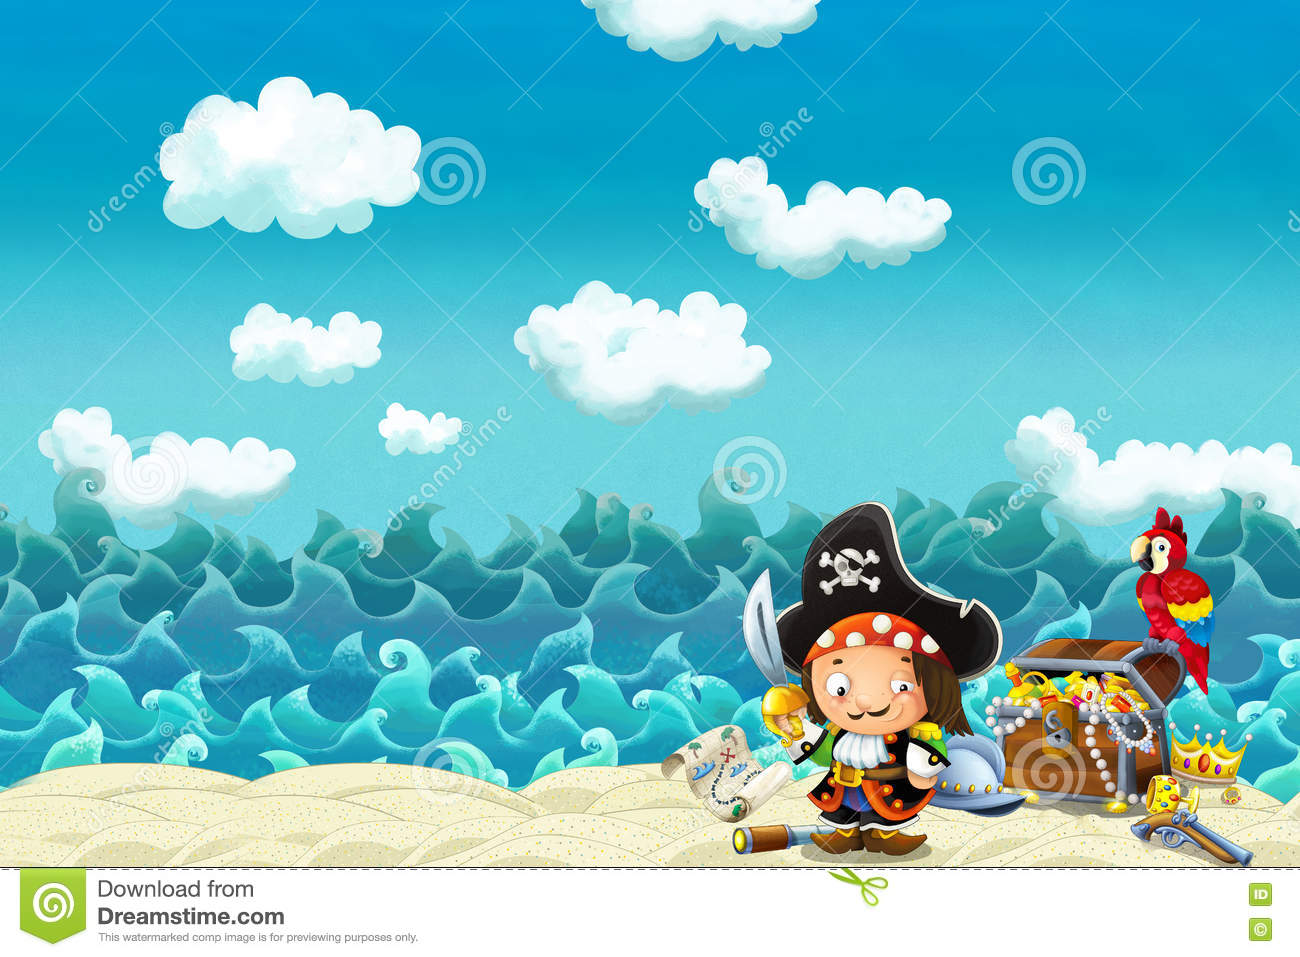 Cartoon scene of beach near the sea or ocean